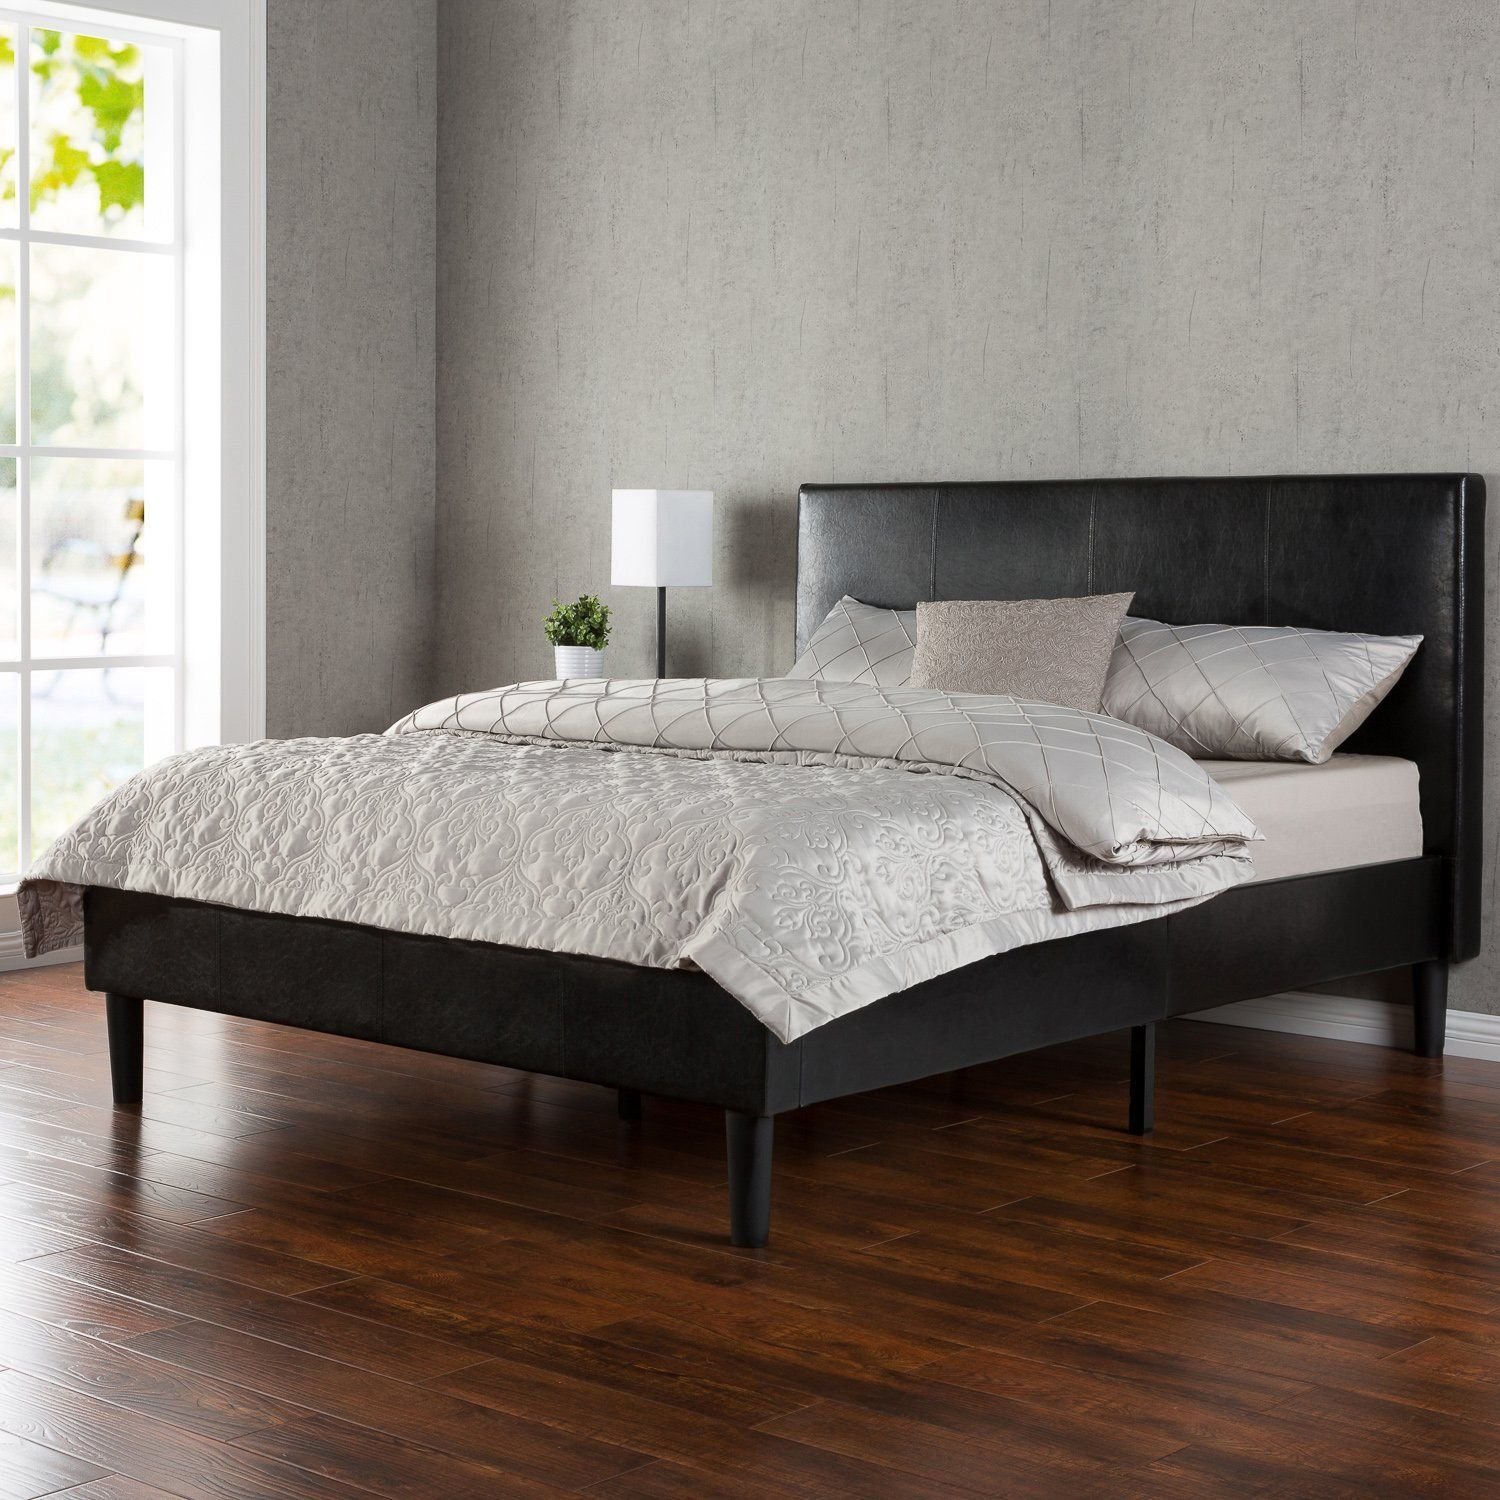 Amazon Com Zinus Deluxe Faux Leather Upholstered Platform Bed With Wooden Slats Queen Kitchen Dining